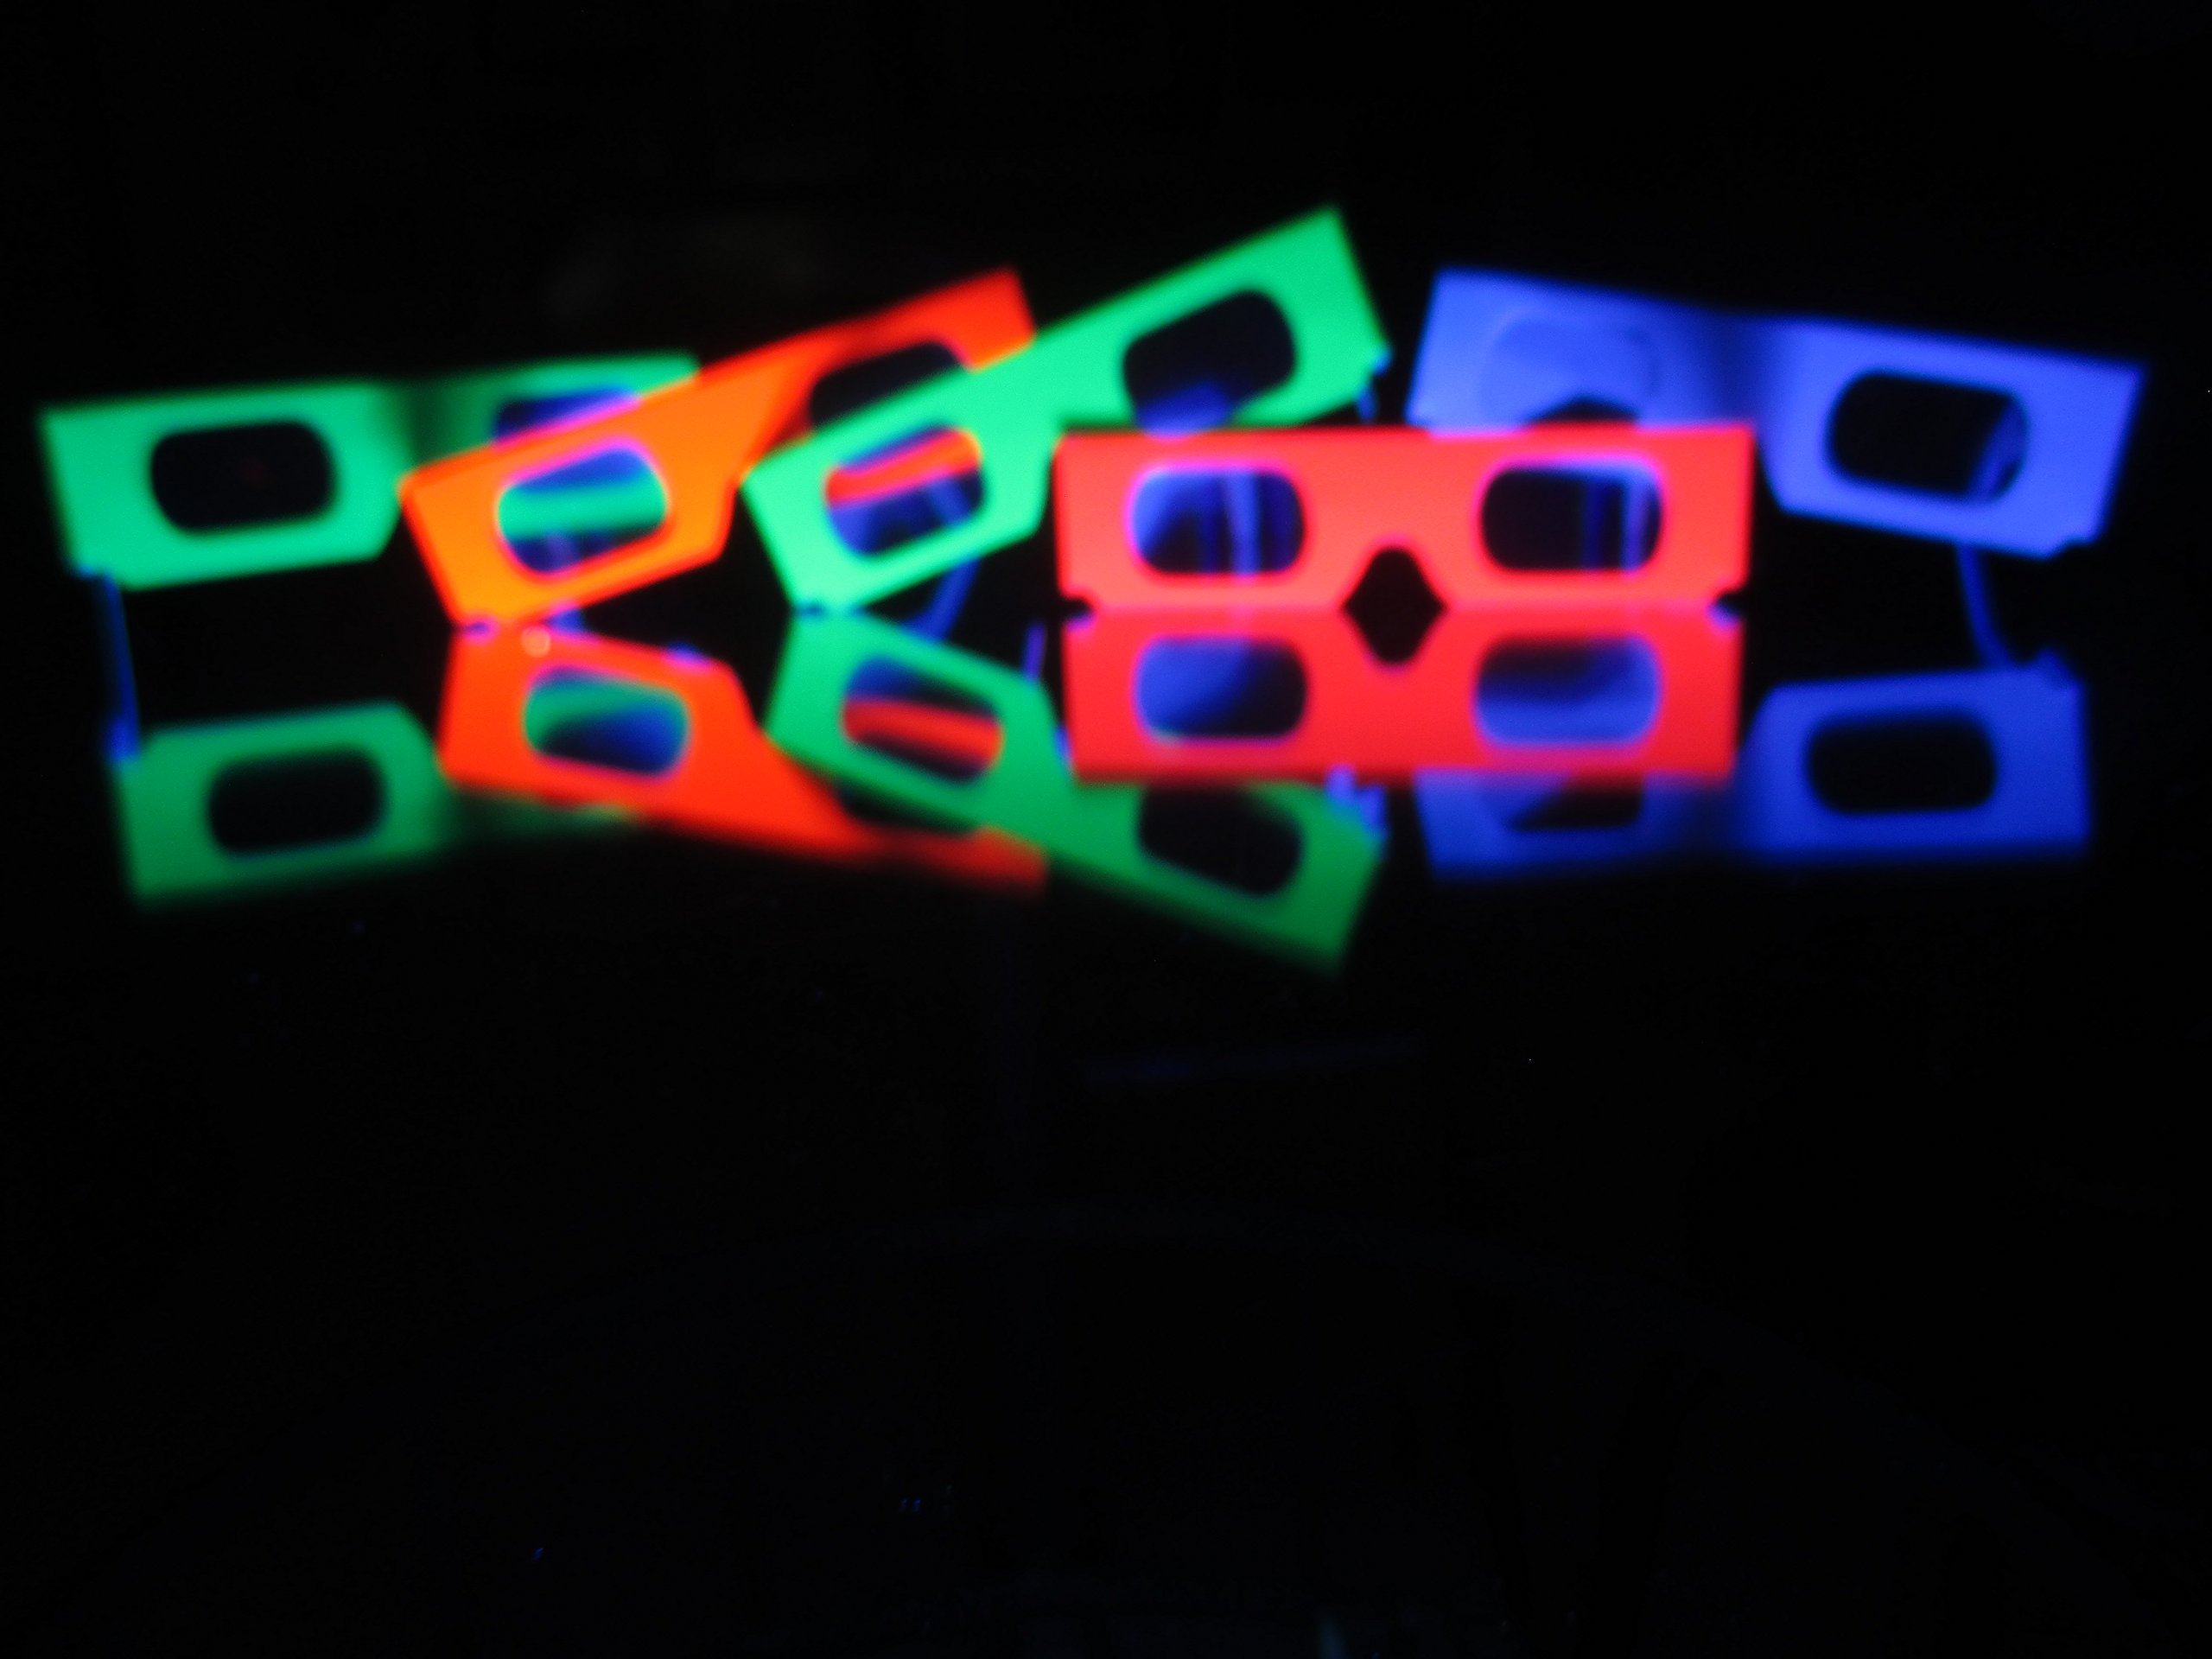 Fireworks Glasses - 200 Pair - For Laser Shows, Raves, Holiday Lights by 3DHeaven (Image #4)